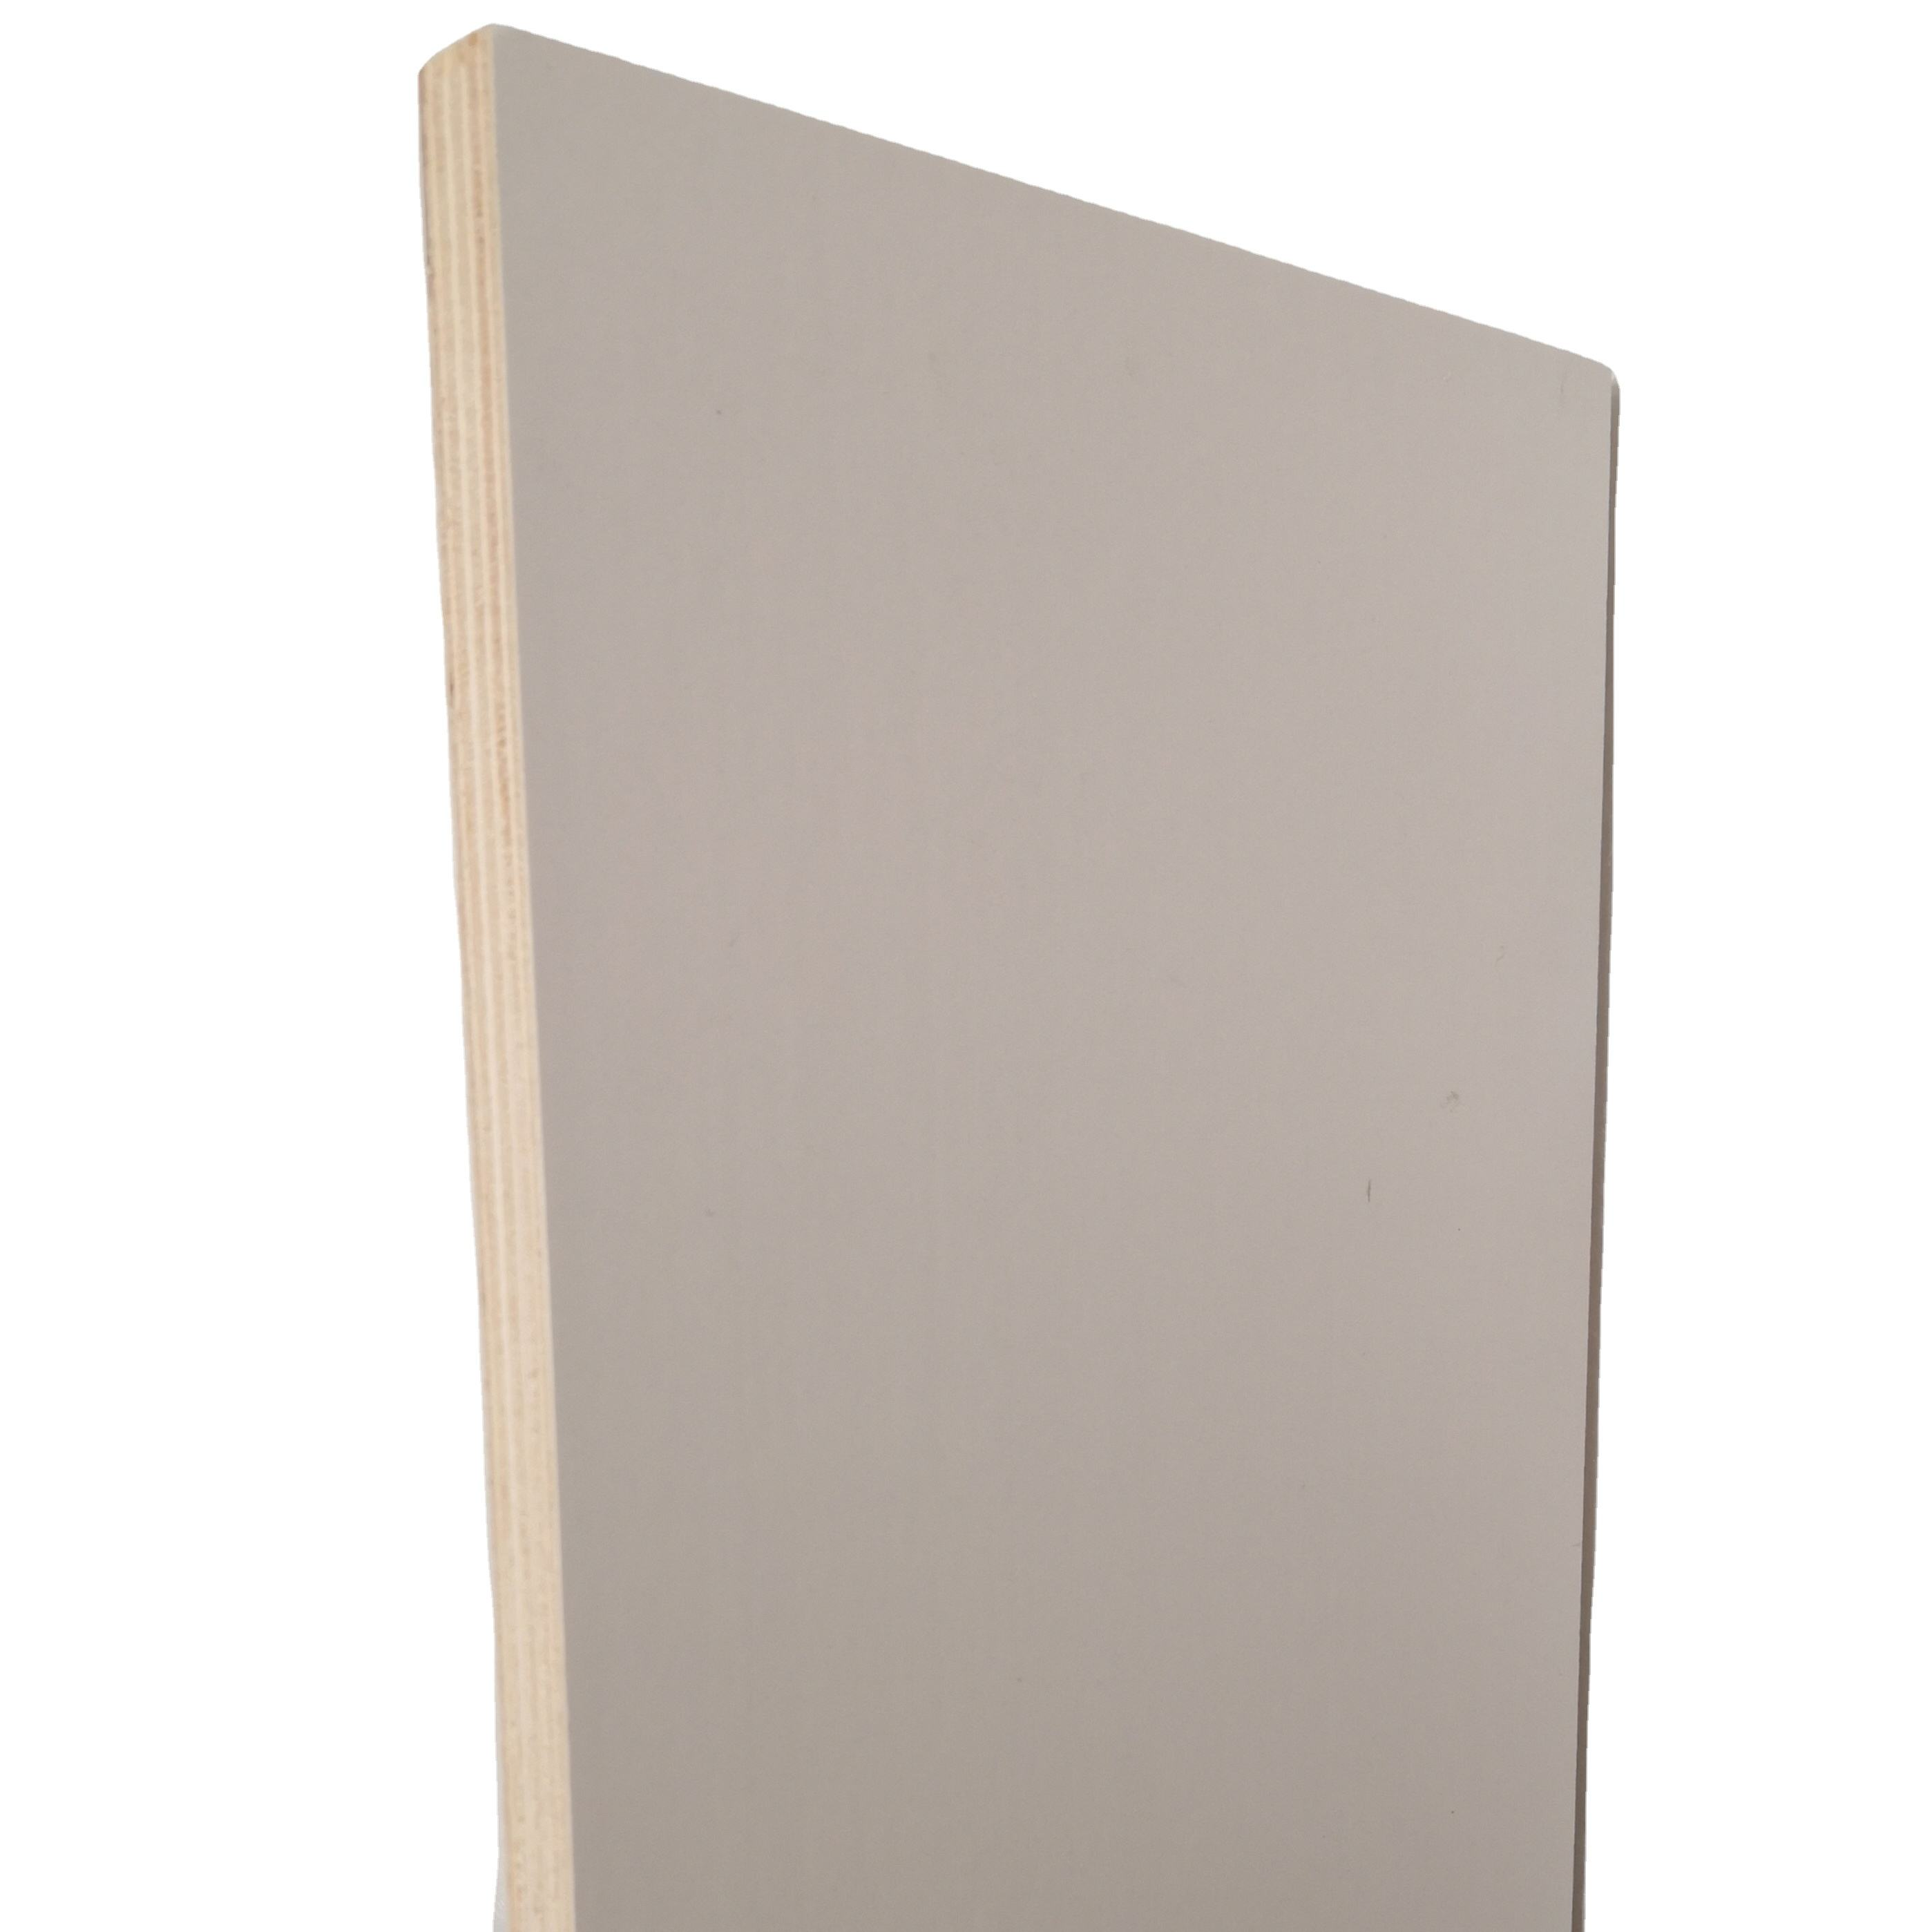 Wholesale Non-Toxic Higher Cost Performance Veneer Plywood